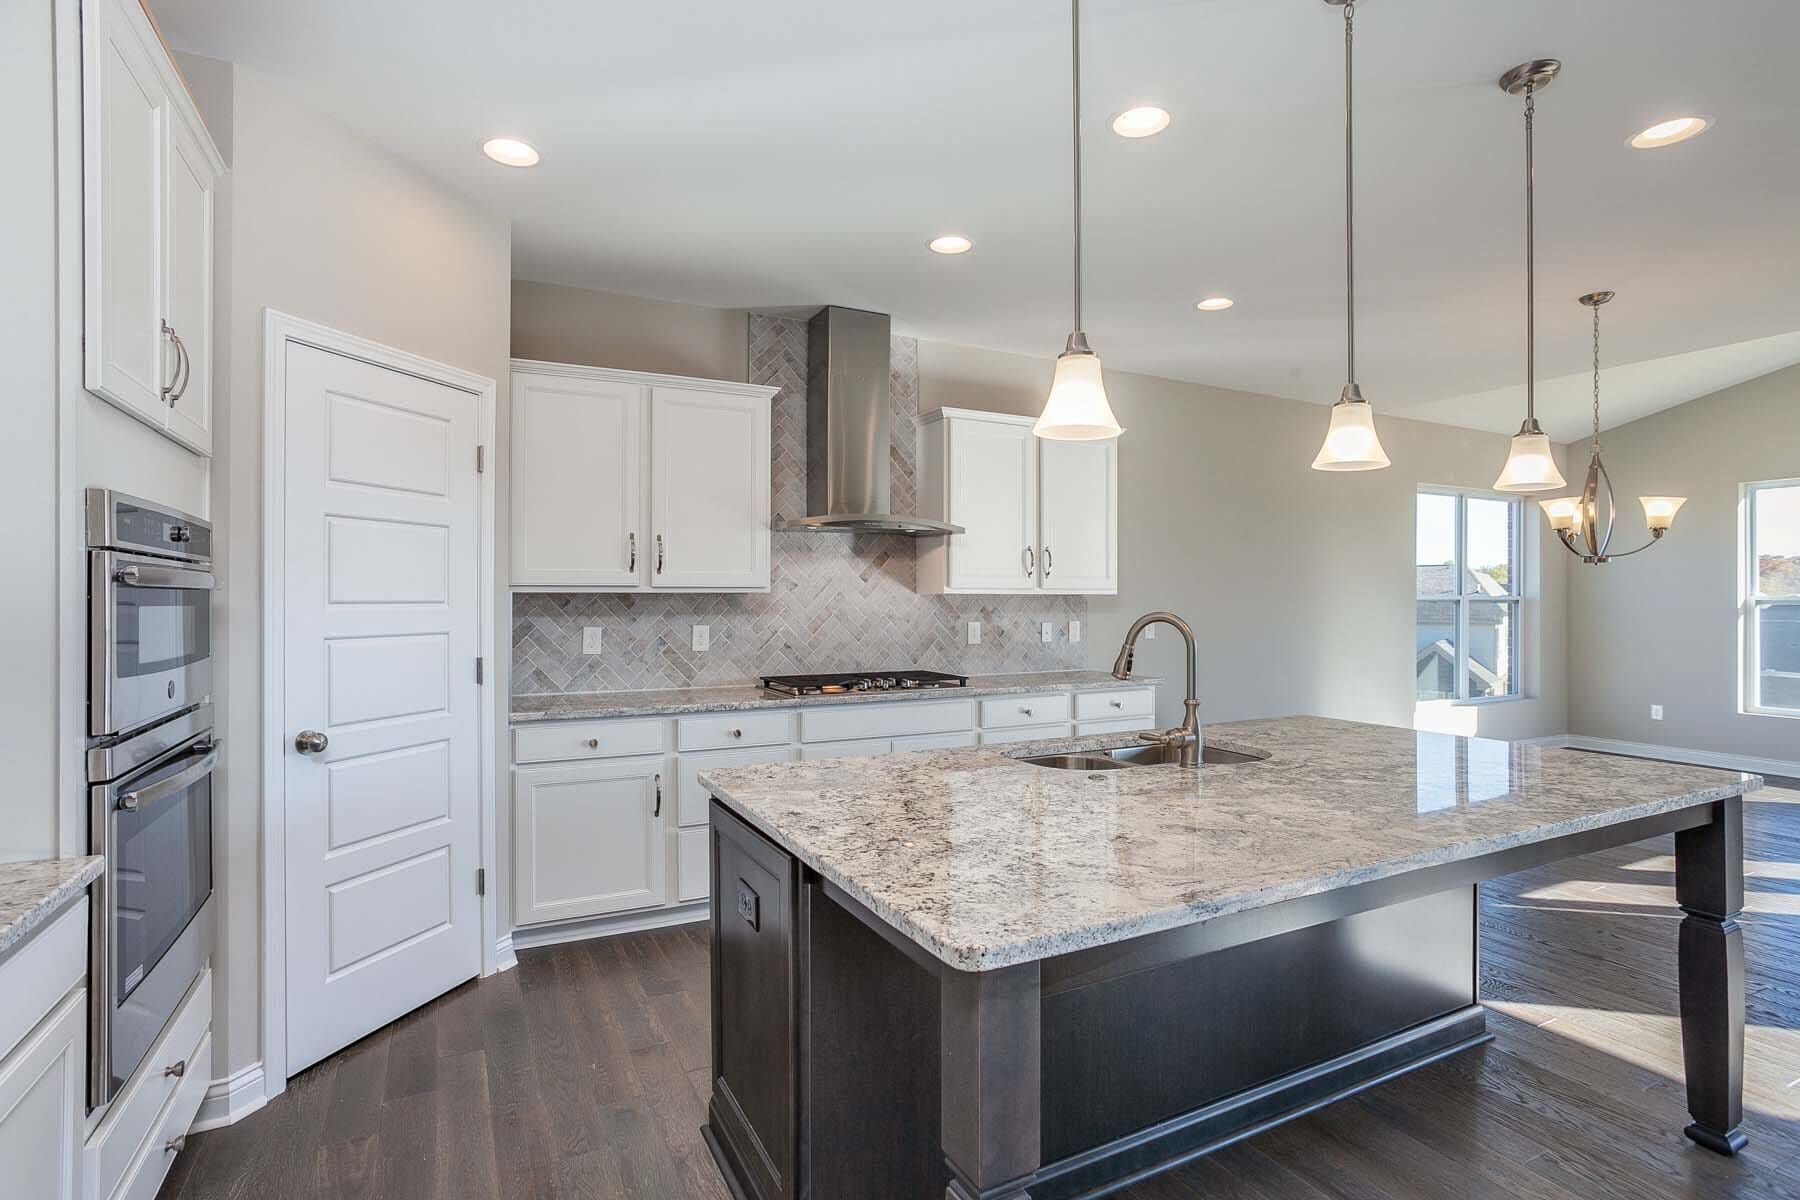 Kitchen featured in the Cheswicke By M/I Homes in Cincinnati, OH